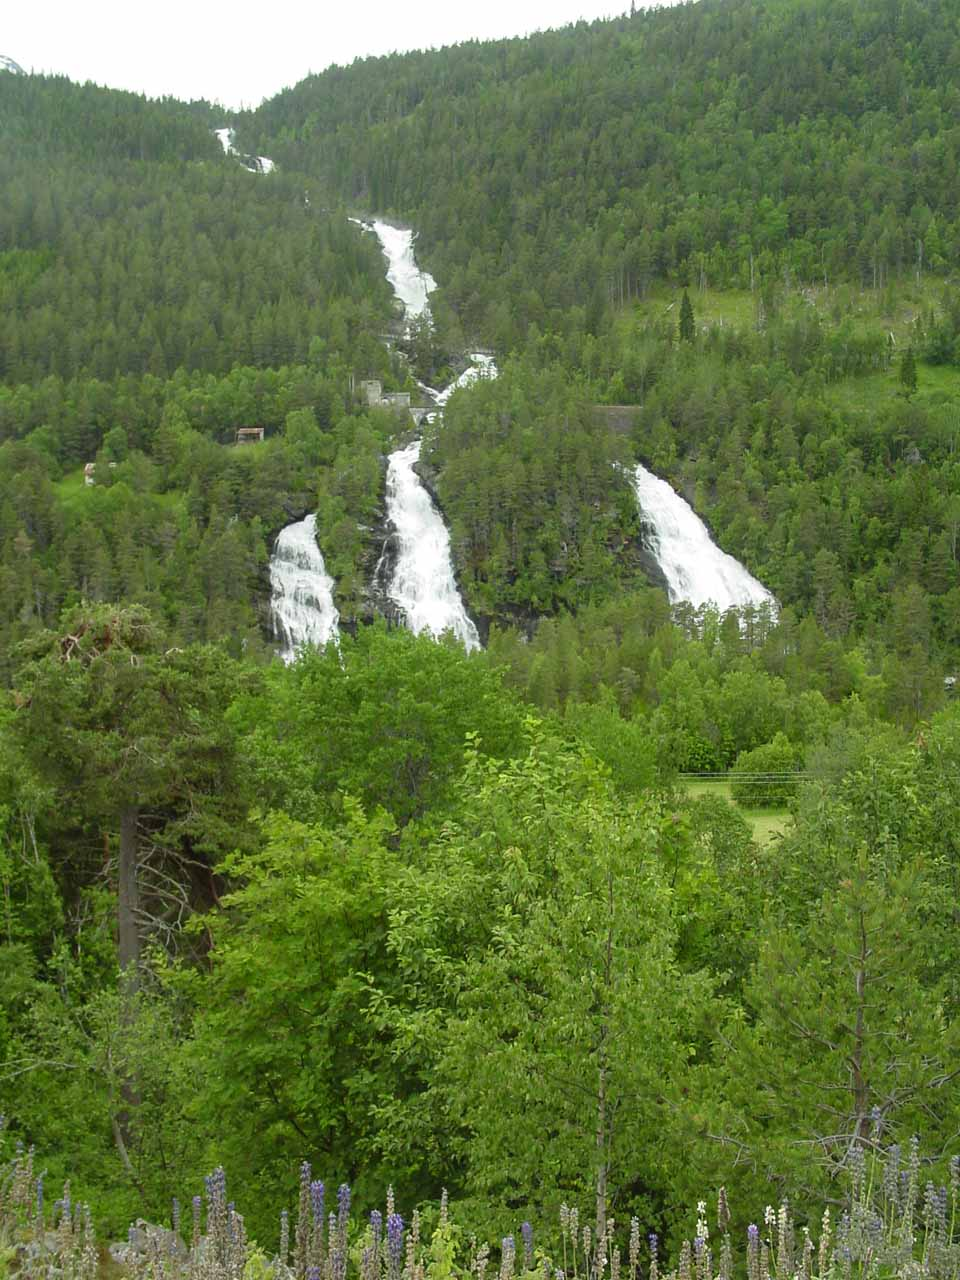 This interestingly-shaped waterfall was Vermafossen